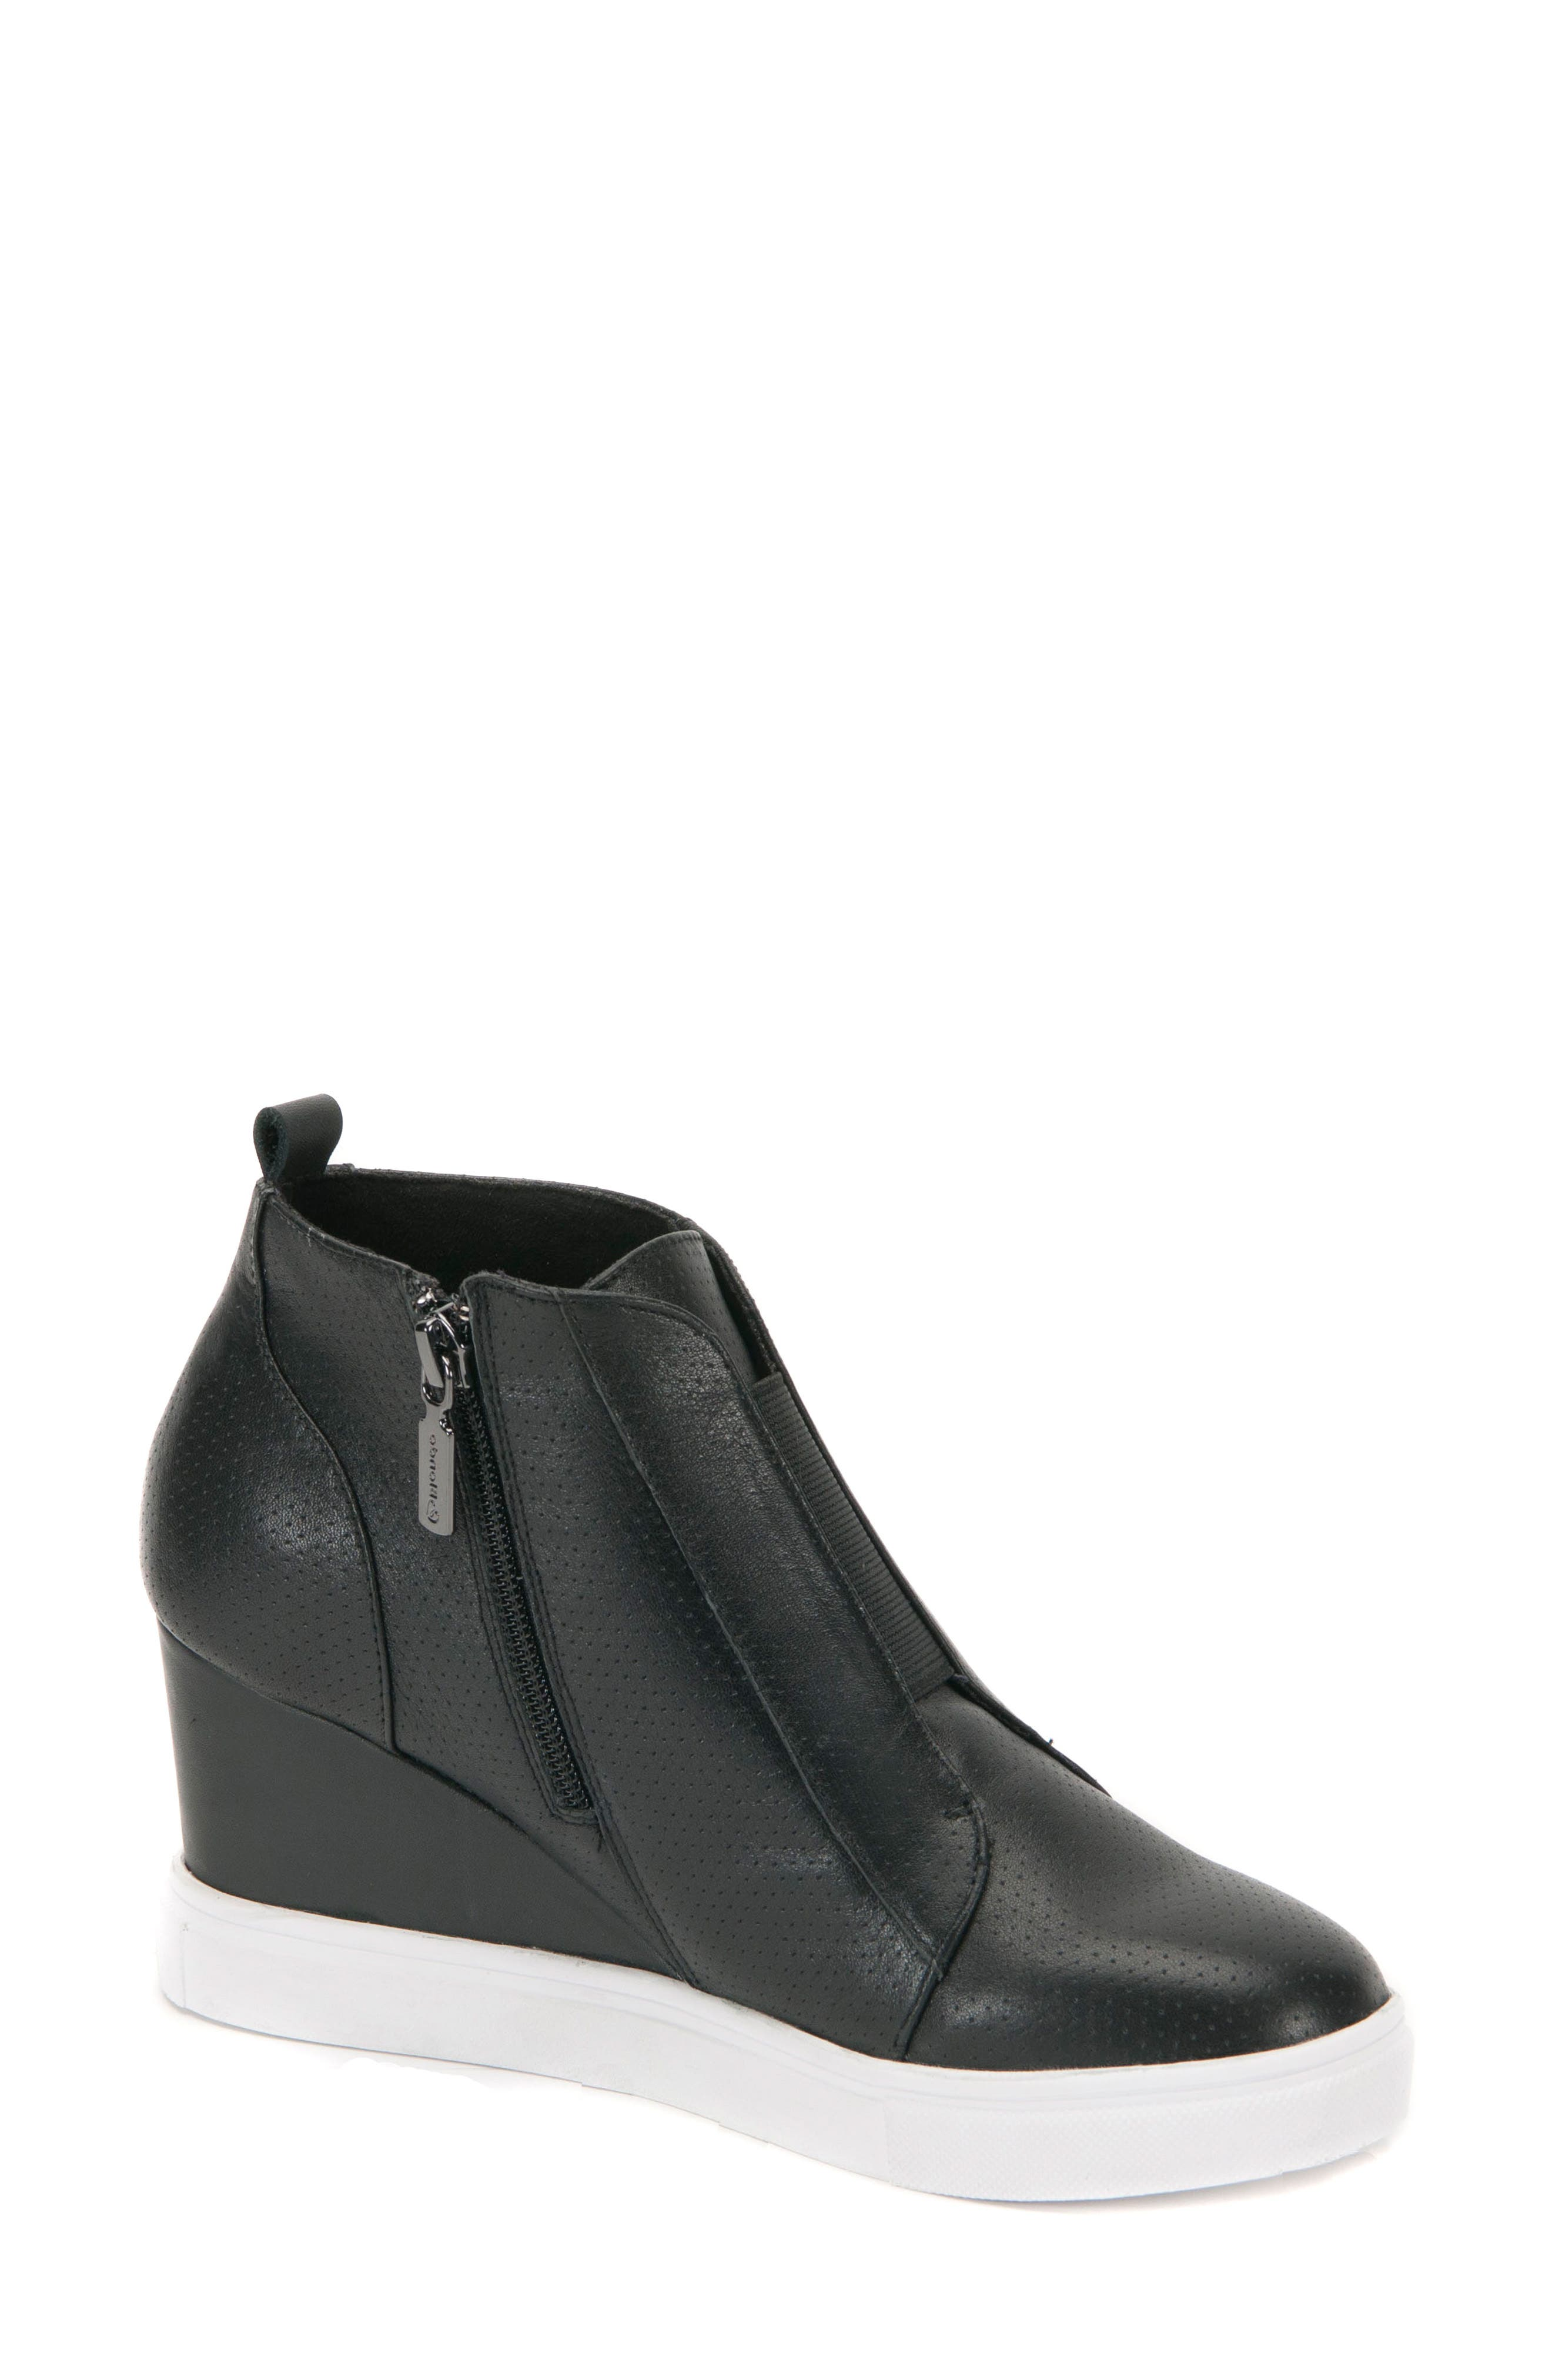 Gatsby Waterproof Wedge Bootie,                             Main thumbnail 1, color,                             BLACK LEATHER